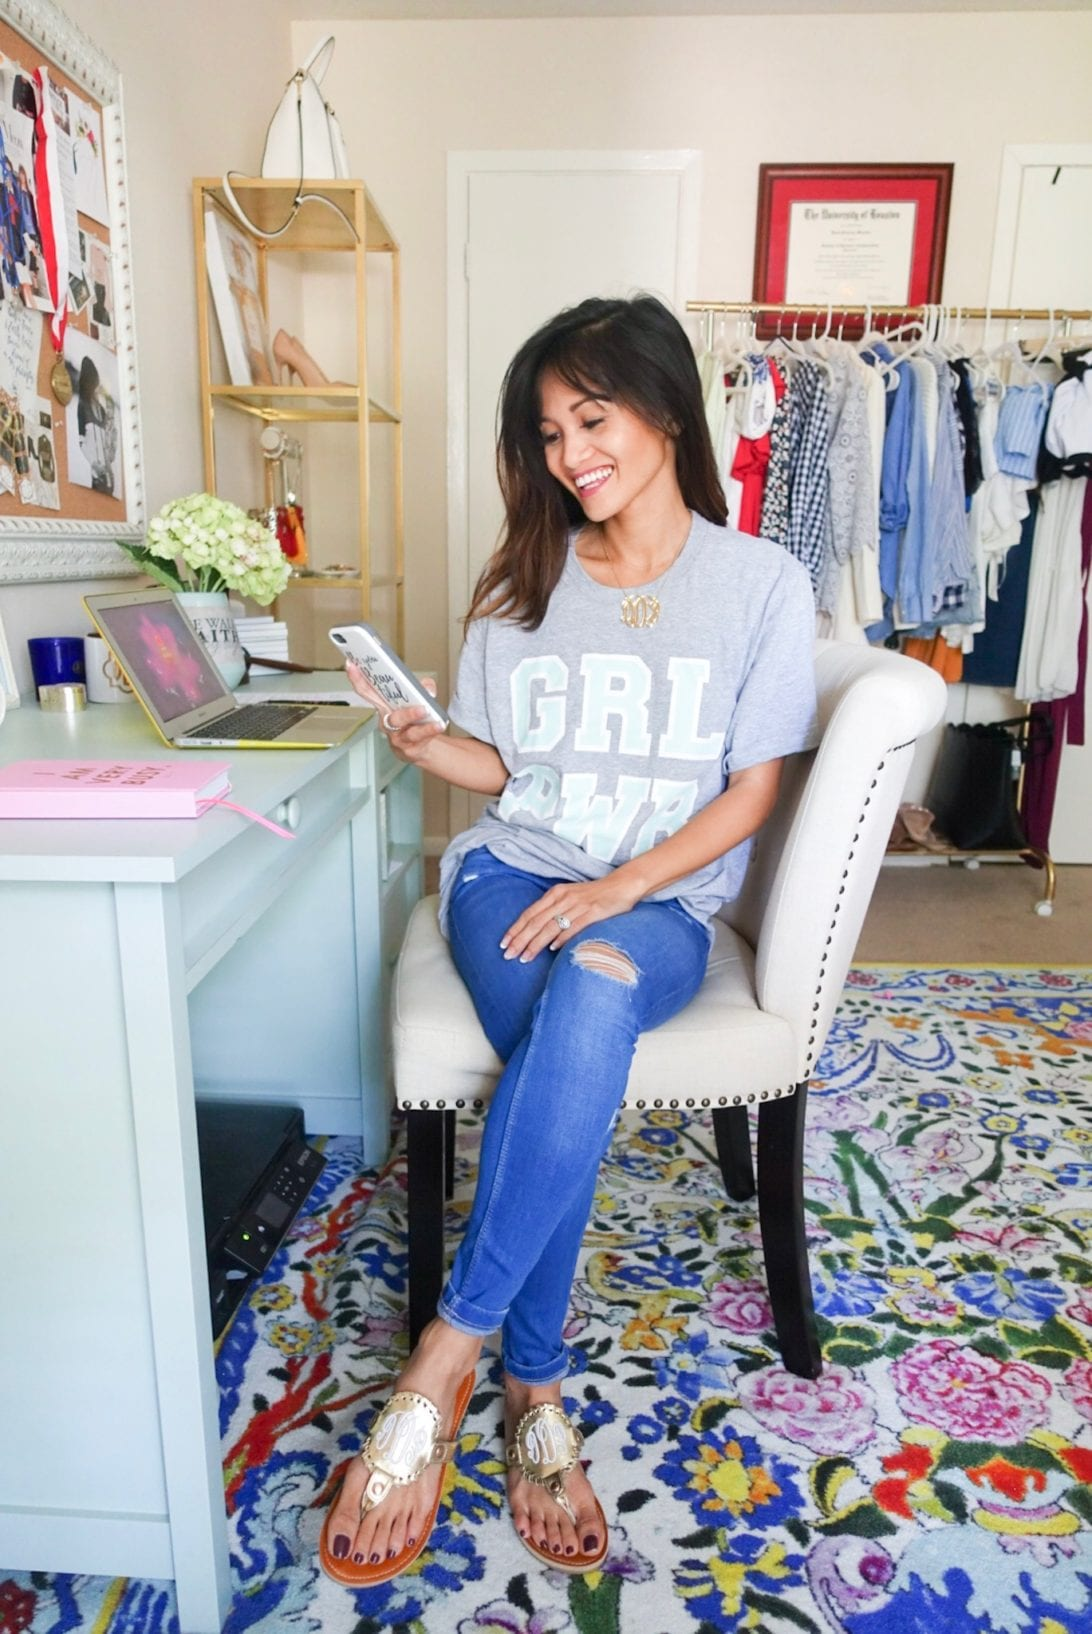 Confidence Tips For the Directions of Your Dreams by Houston blogger Dawn P. Darnell - grl pwr, girl power shirt, home office, blogger office